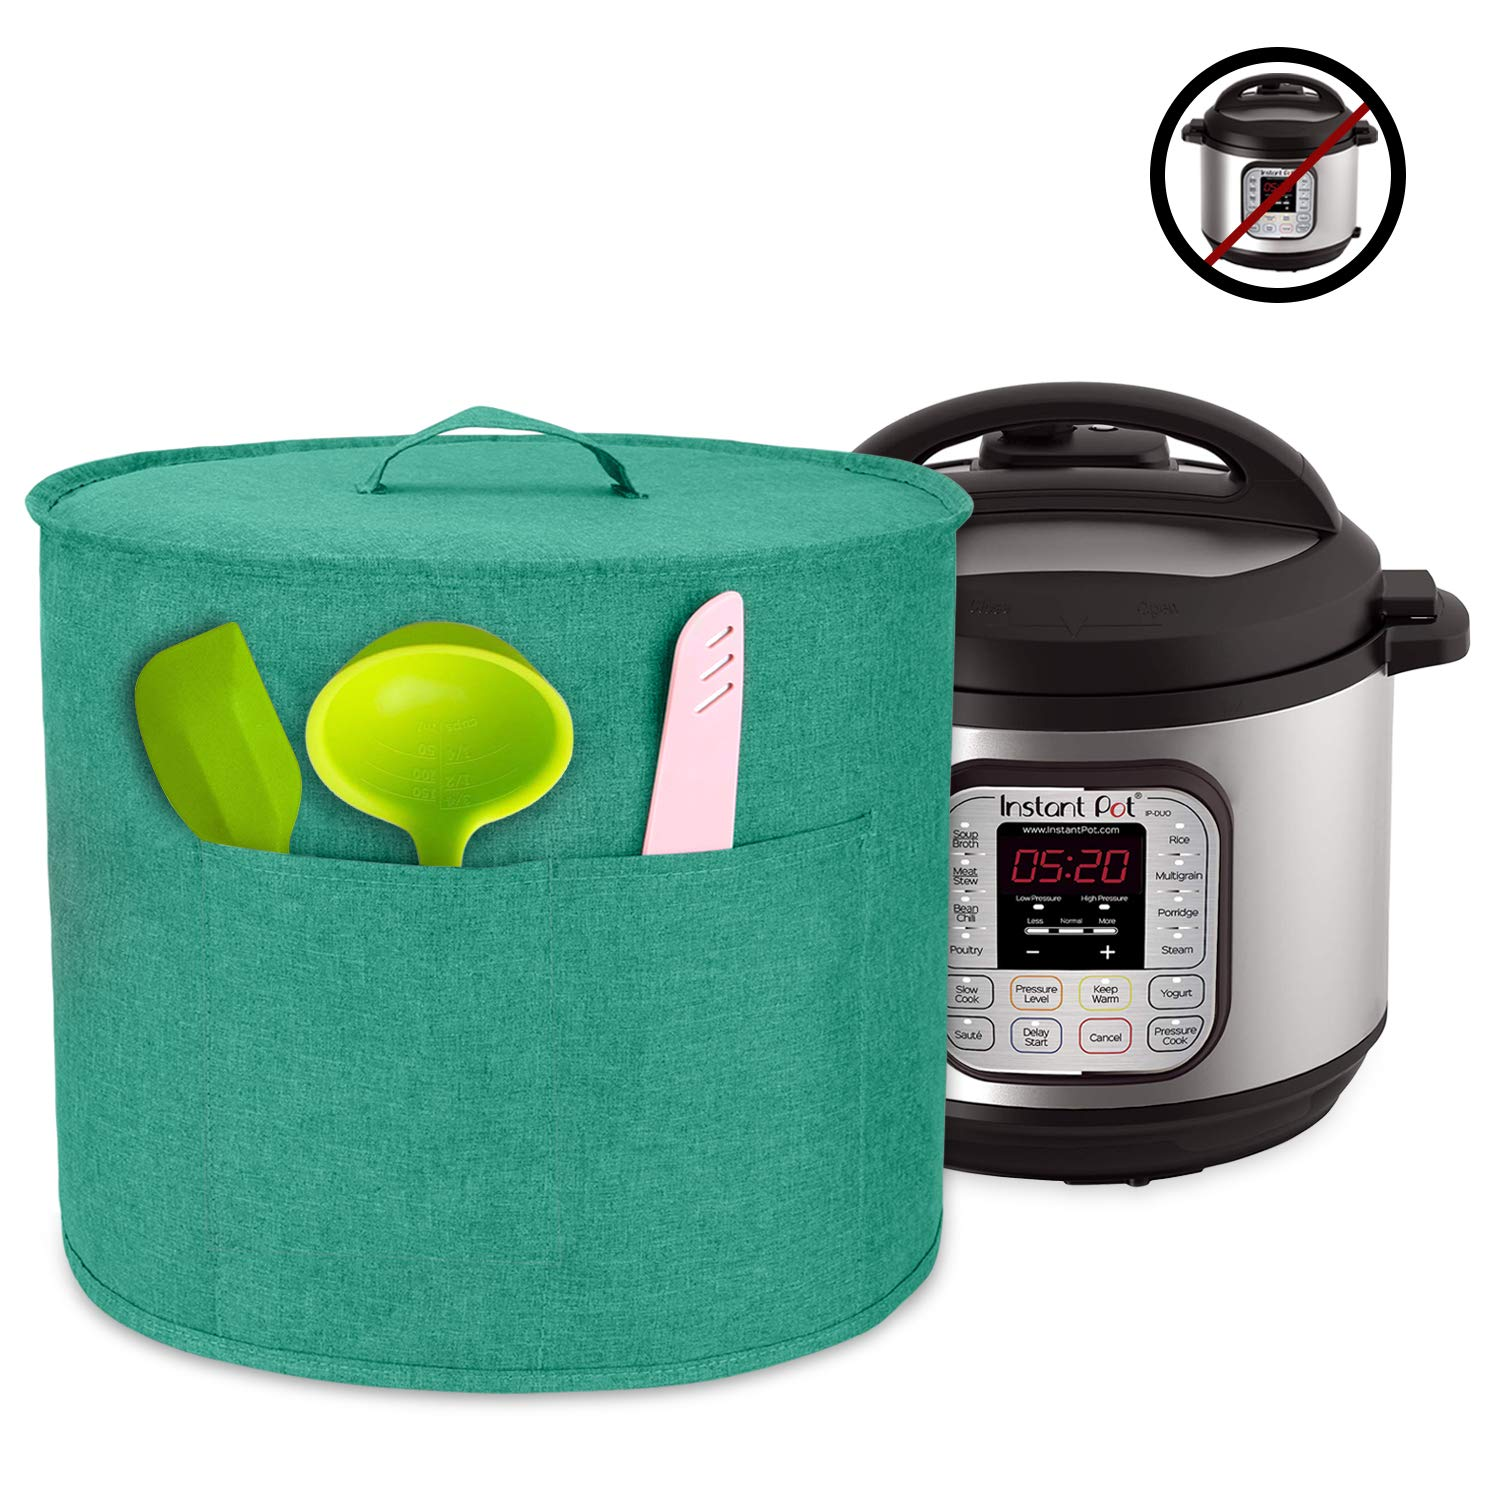 Luxja Dust Cover for 8 Quart Instant Pot, Cloth Cover with Pockets for Instant Pot (8 Quart) and Extra Accessories, Green (Large)